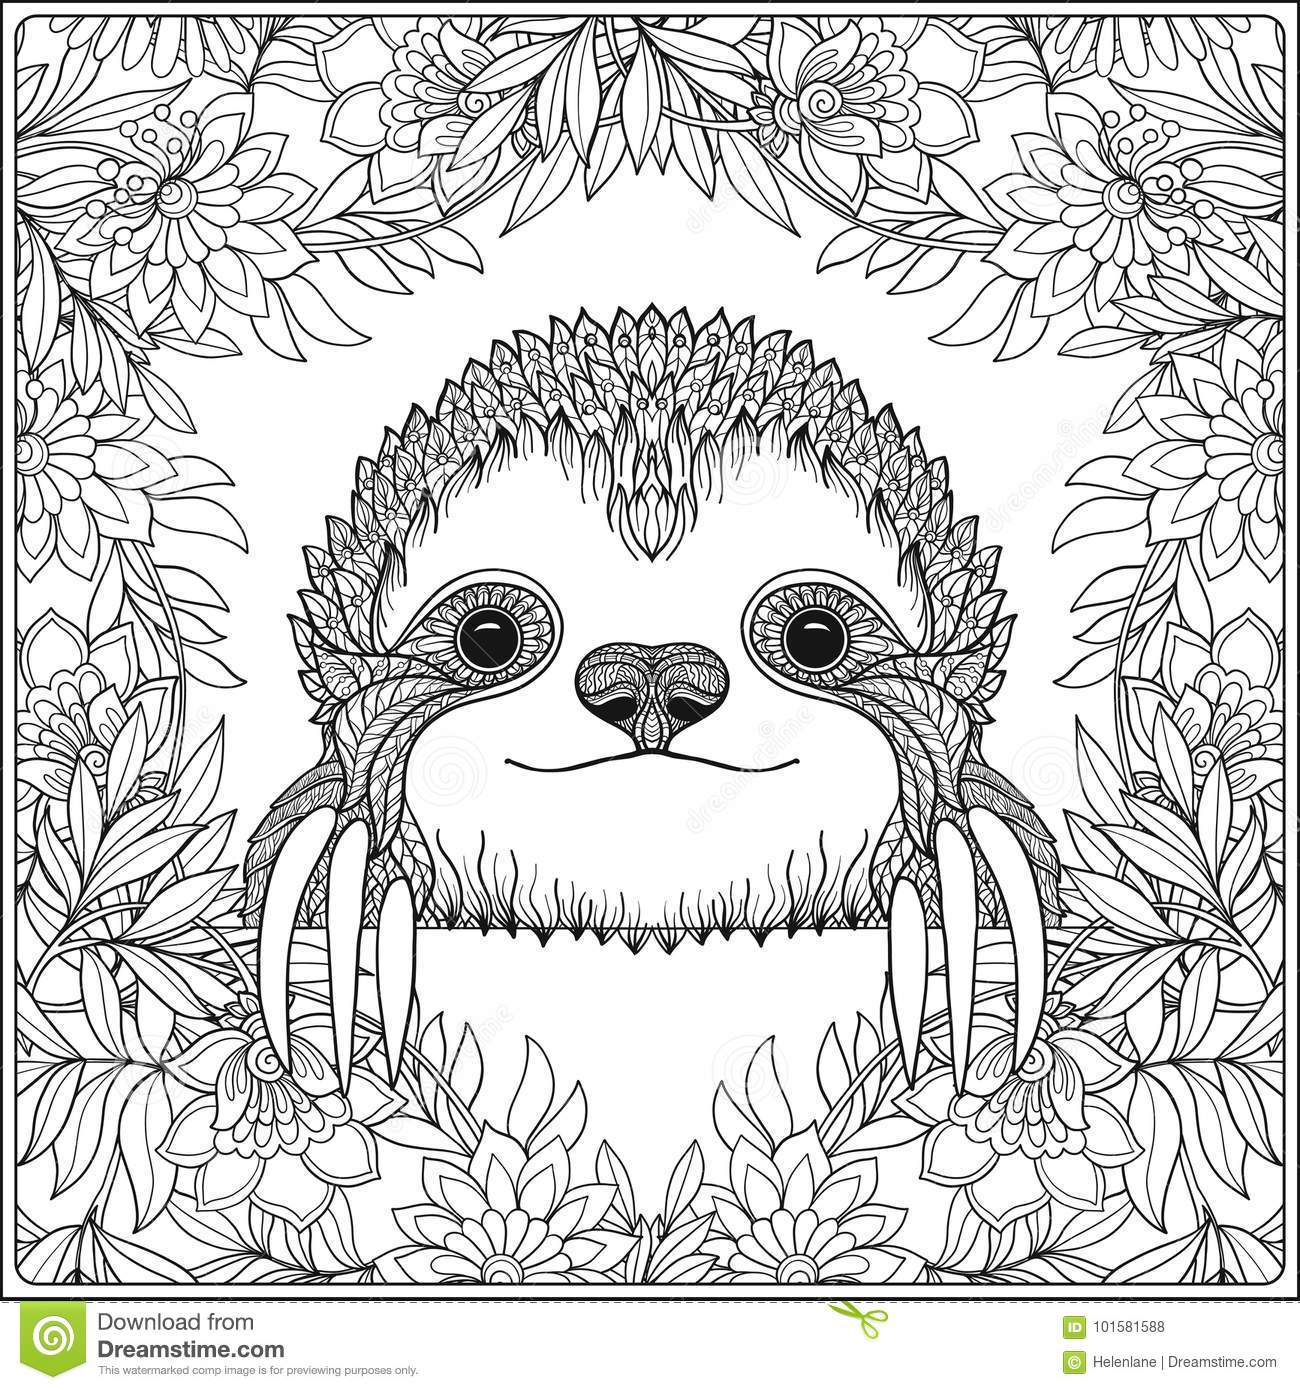 - Coloring Page With Lovely Sloth In Forest. Stock Illustration